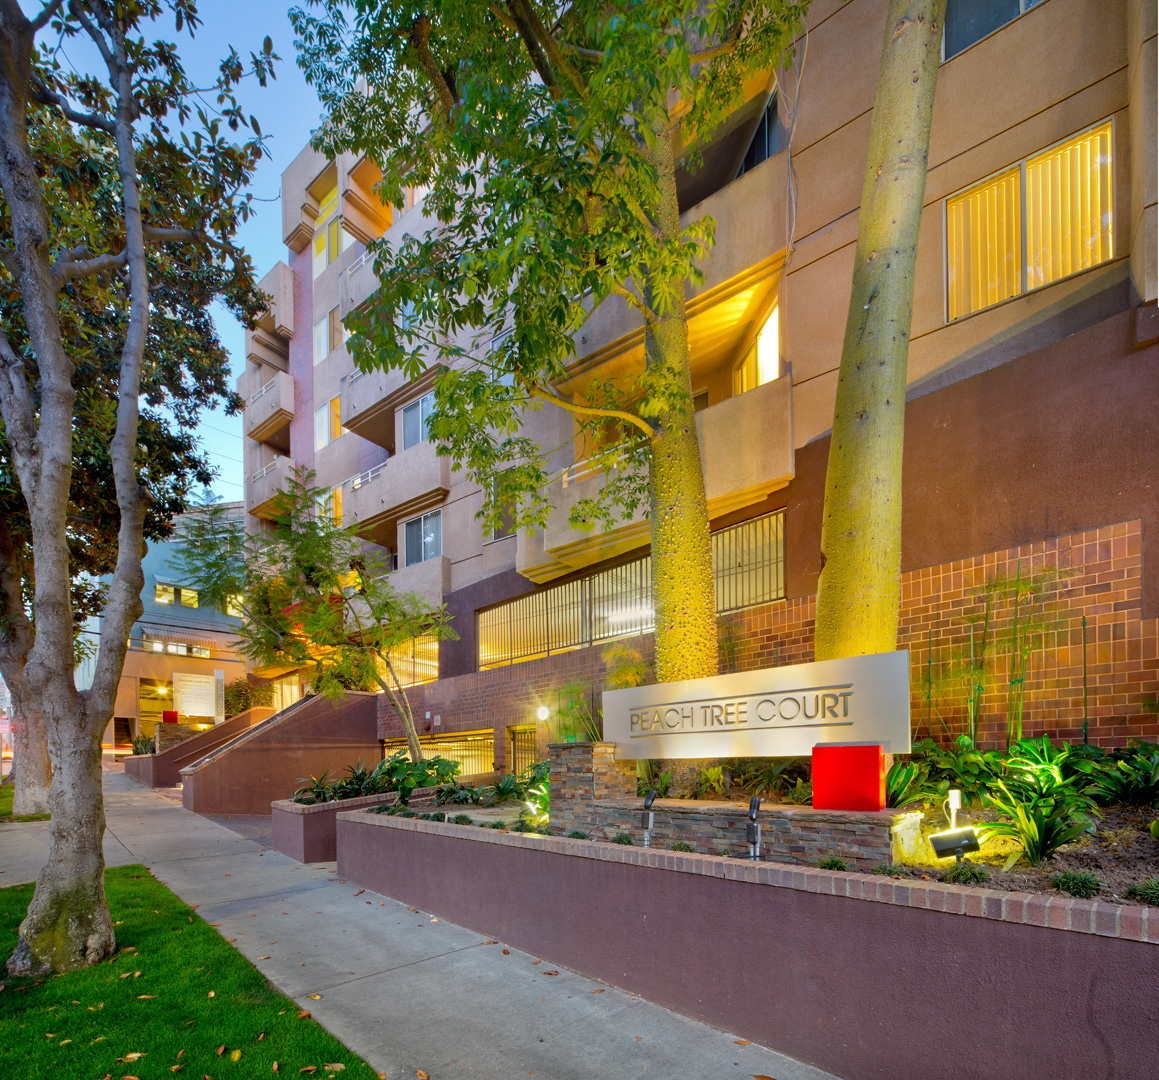 Peach Tree Court Apartments Los Angeles CA 90024